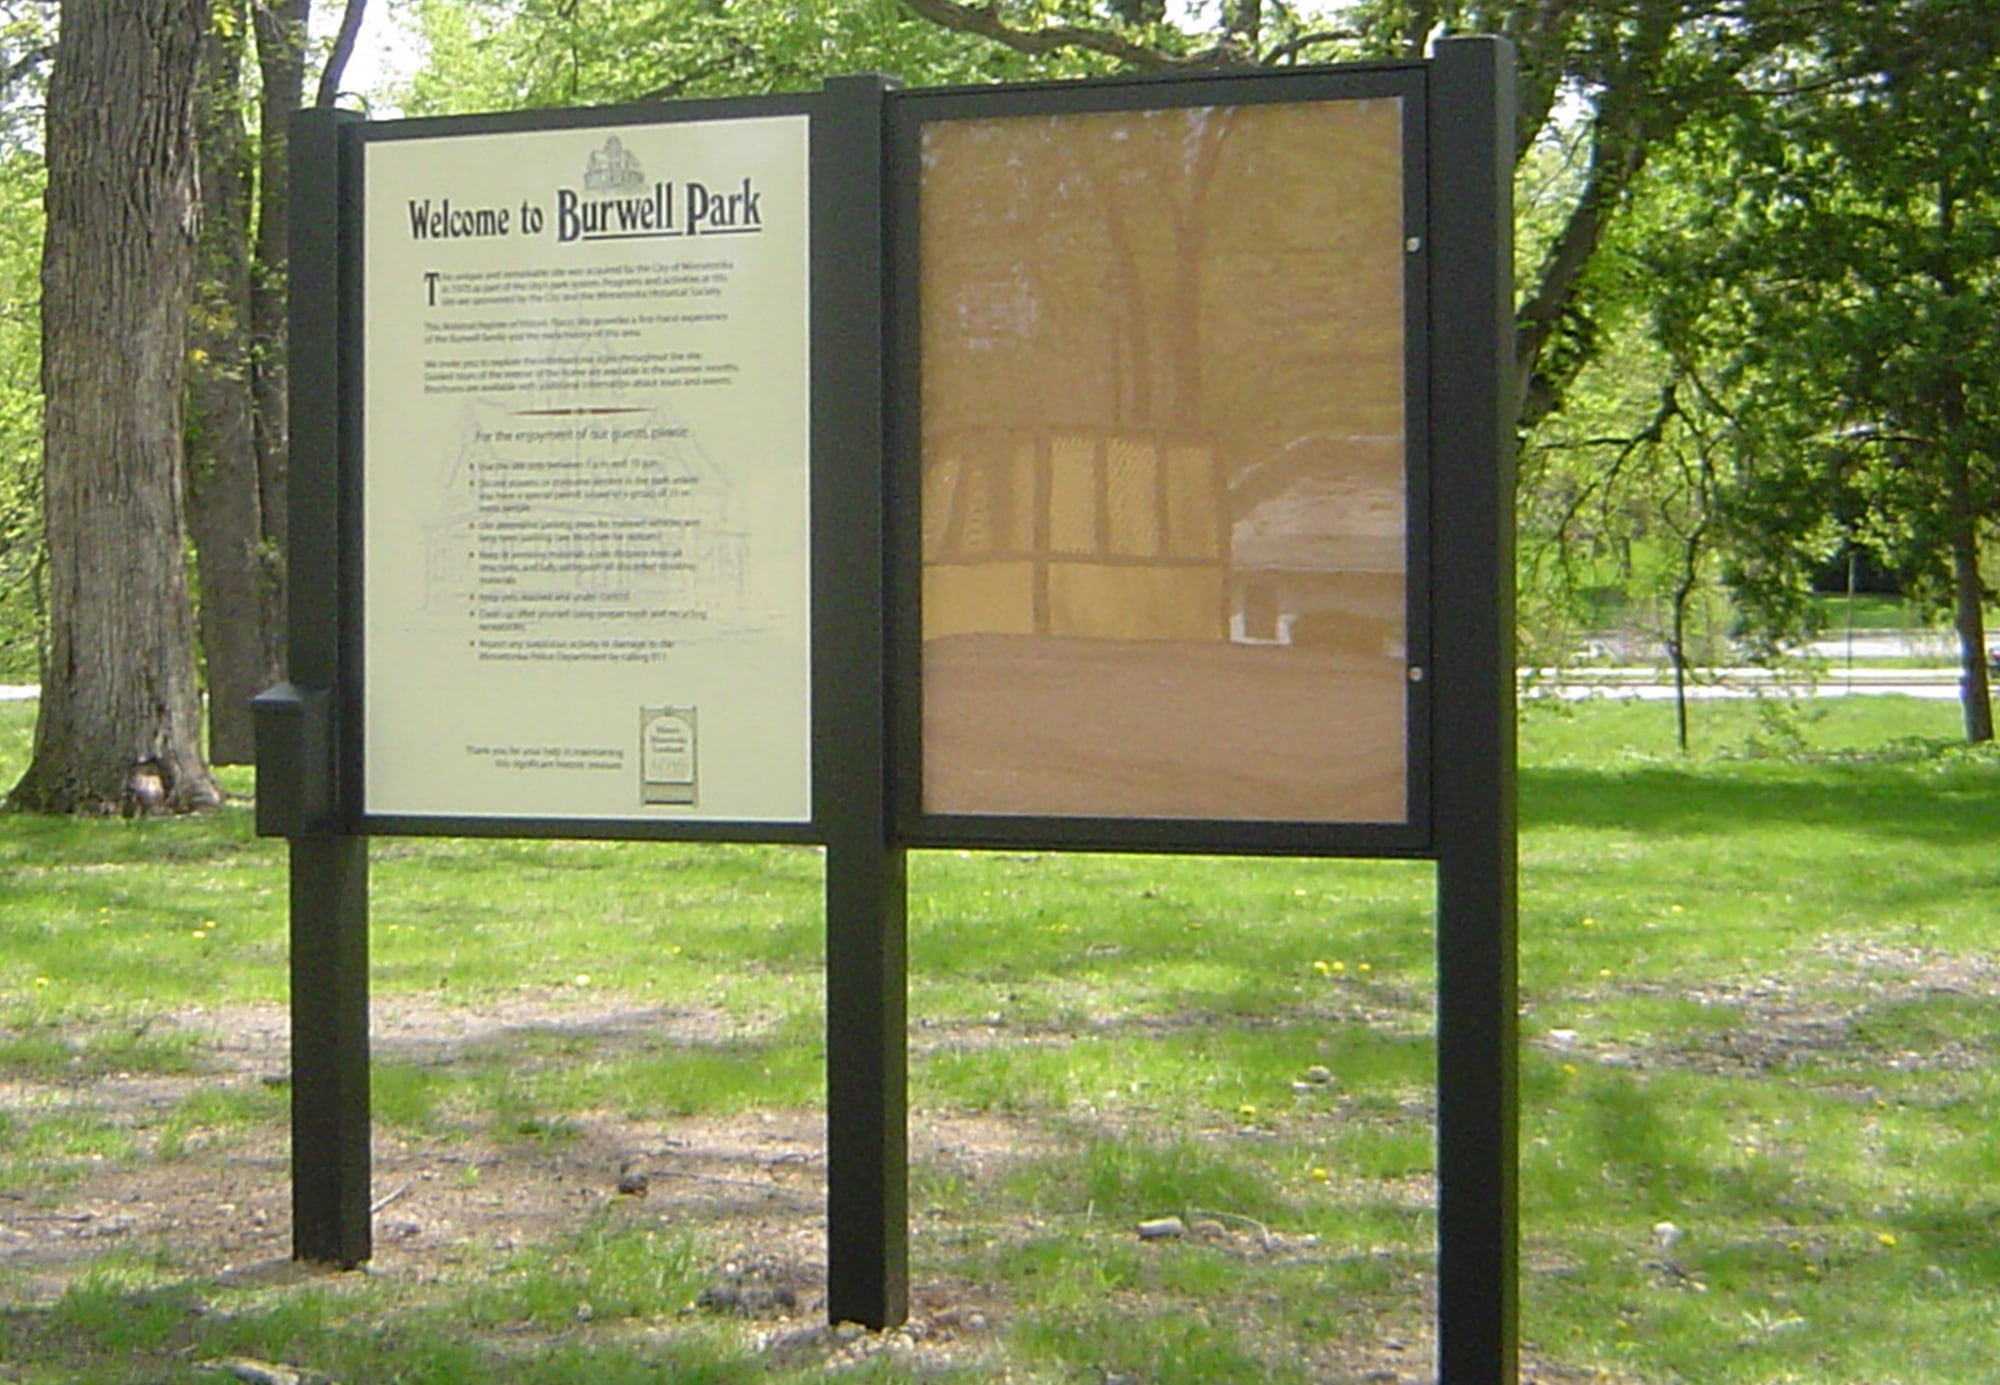 Double upright and bulletin park sign